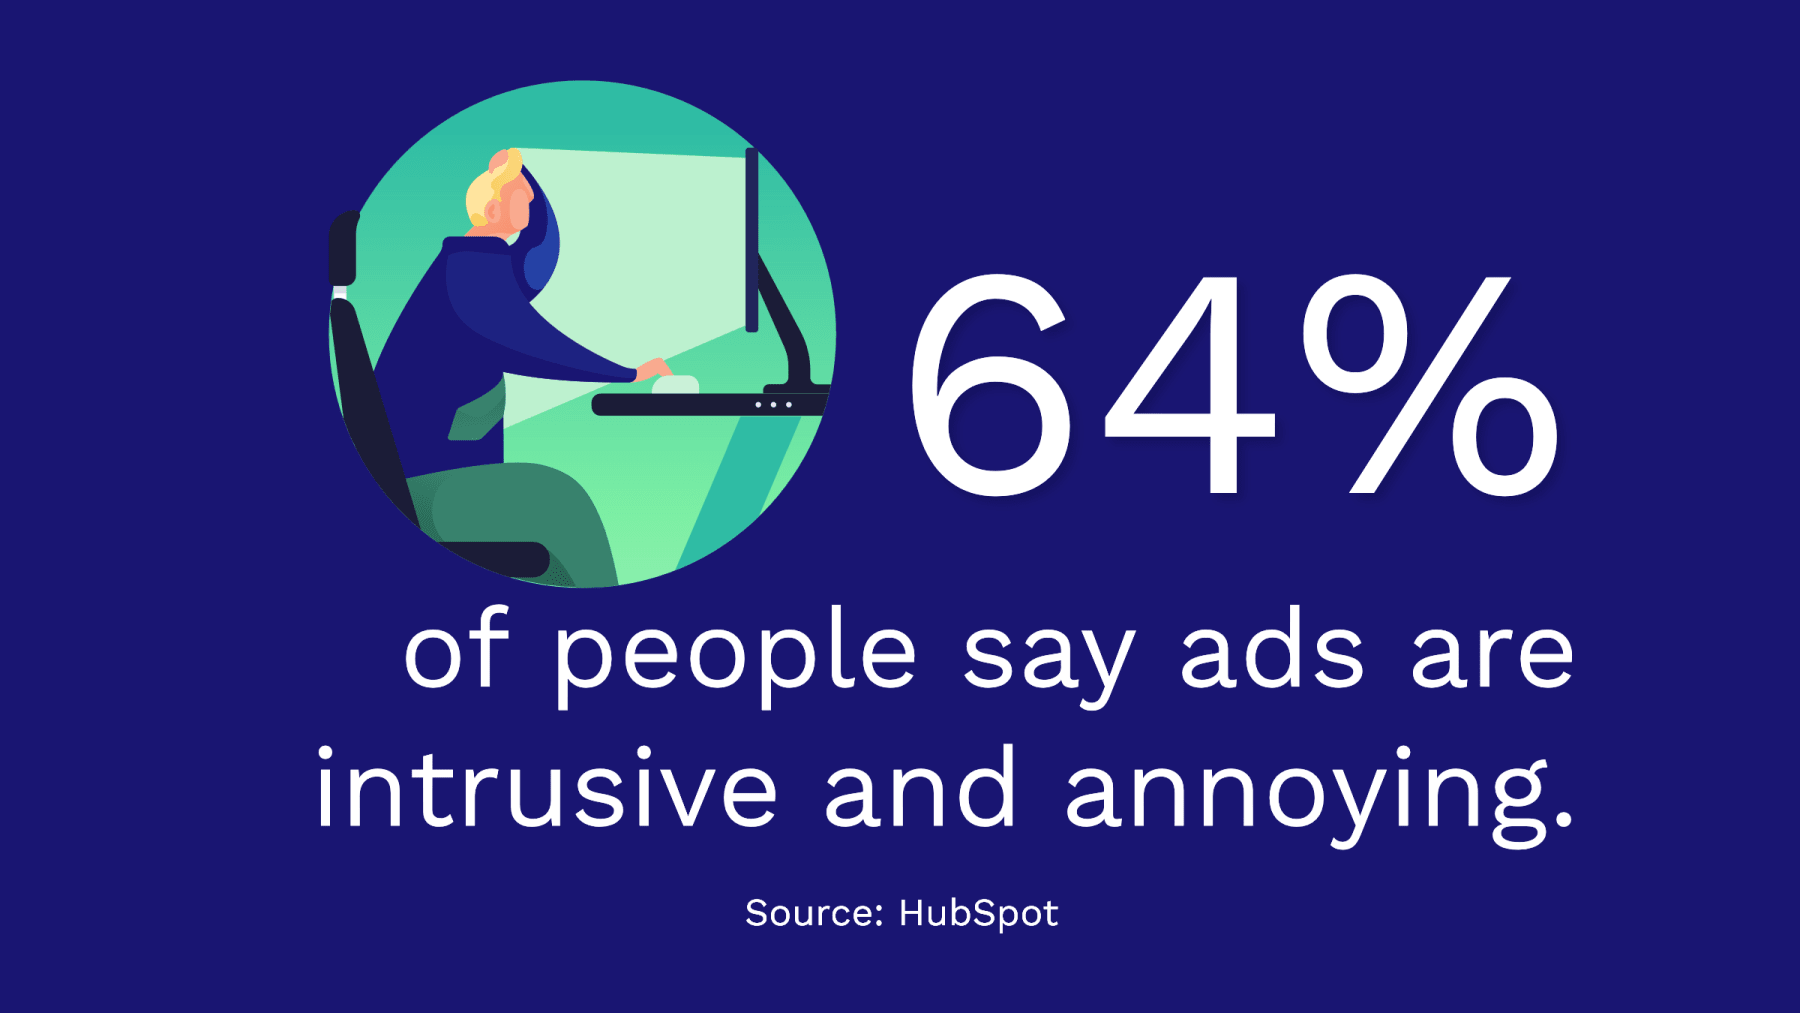 64% of people say ads are intrusive and annoying.